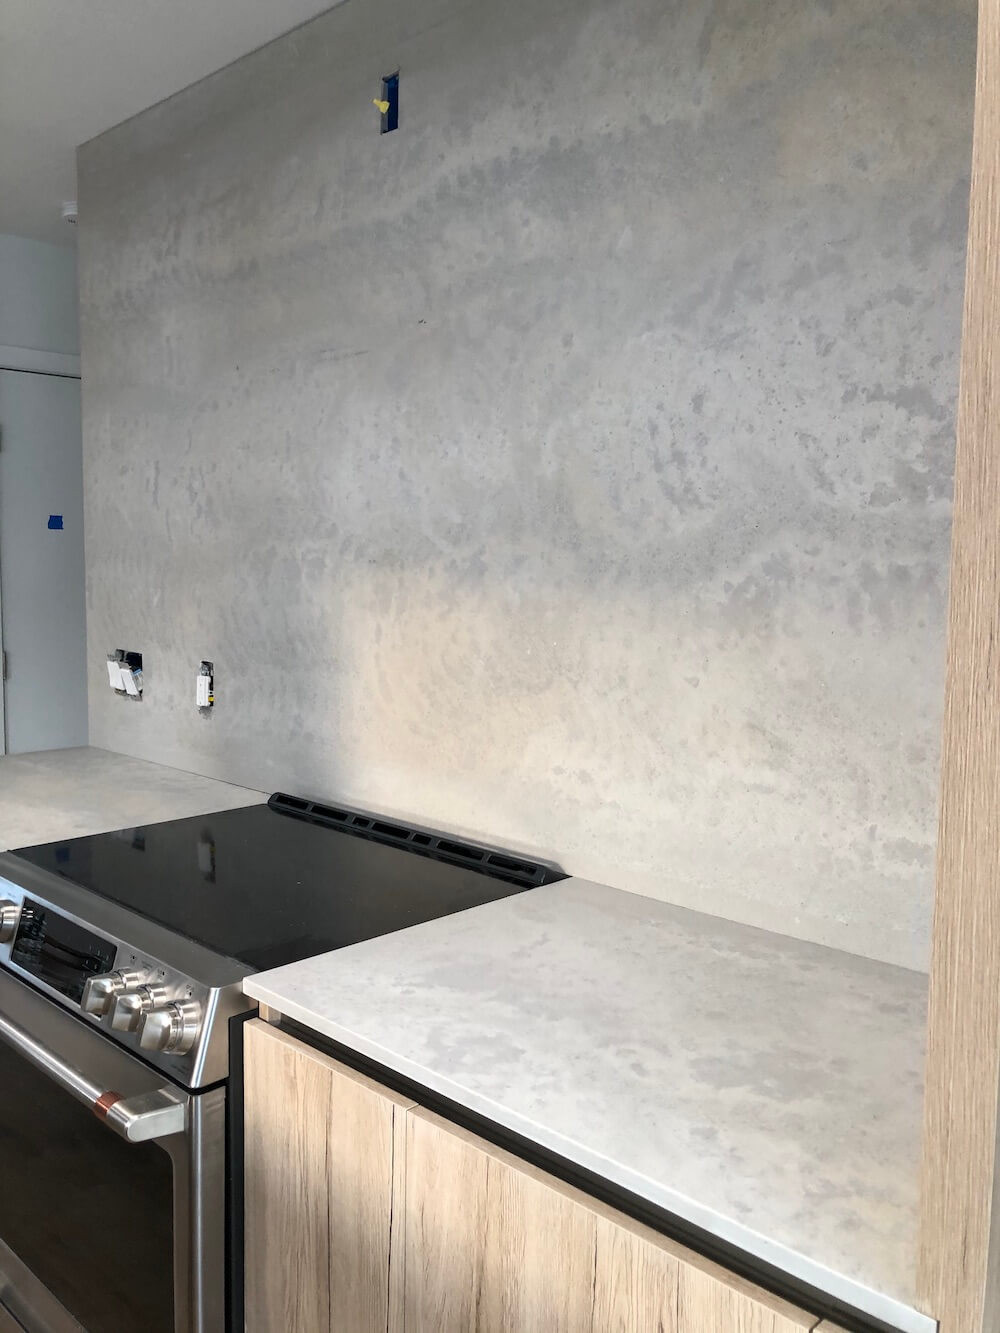 Caesarstone Primordia Kitchen Backsplash Boca Raton FL